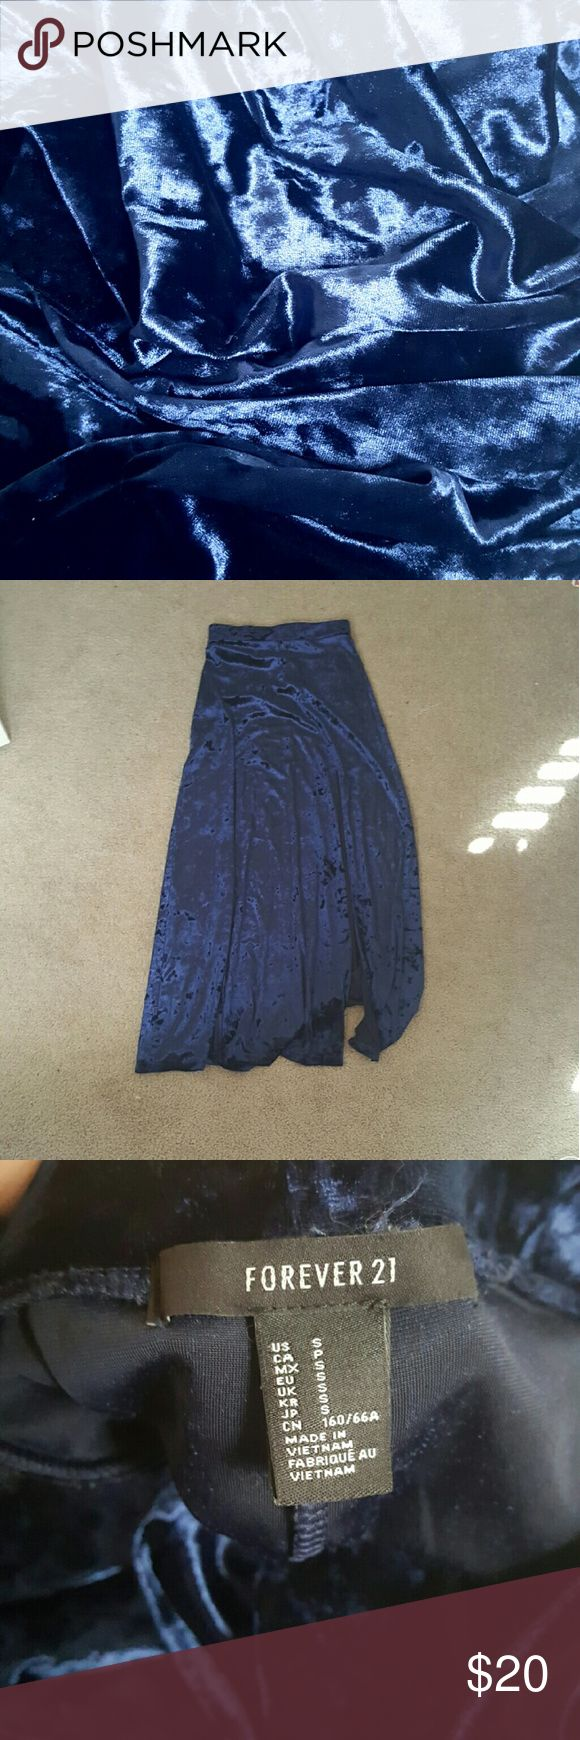 "Velvet maxi skirt Deep royal blue velvet maxi skirt, worn a couple of times, its very long im 5'3"" and i use it as a high waisted maxi skirt and it still brushes the floor, its very beautiful and oerfect for those goth or grunge looks, will take offers, no lowballing Forever 21 Skirts Maxi"